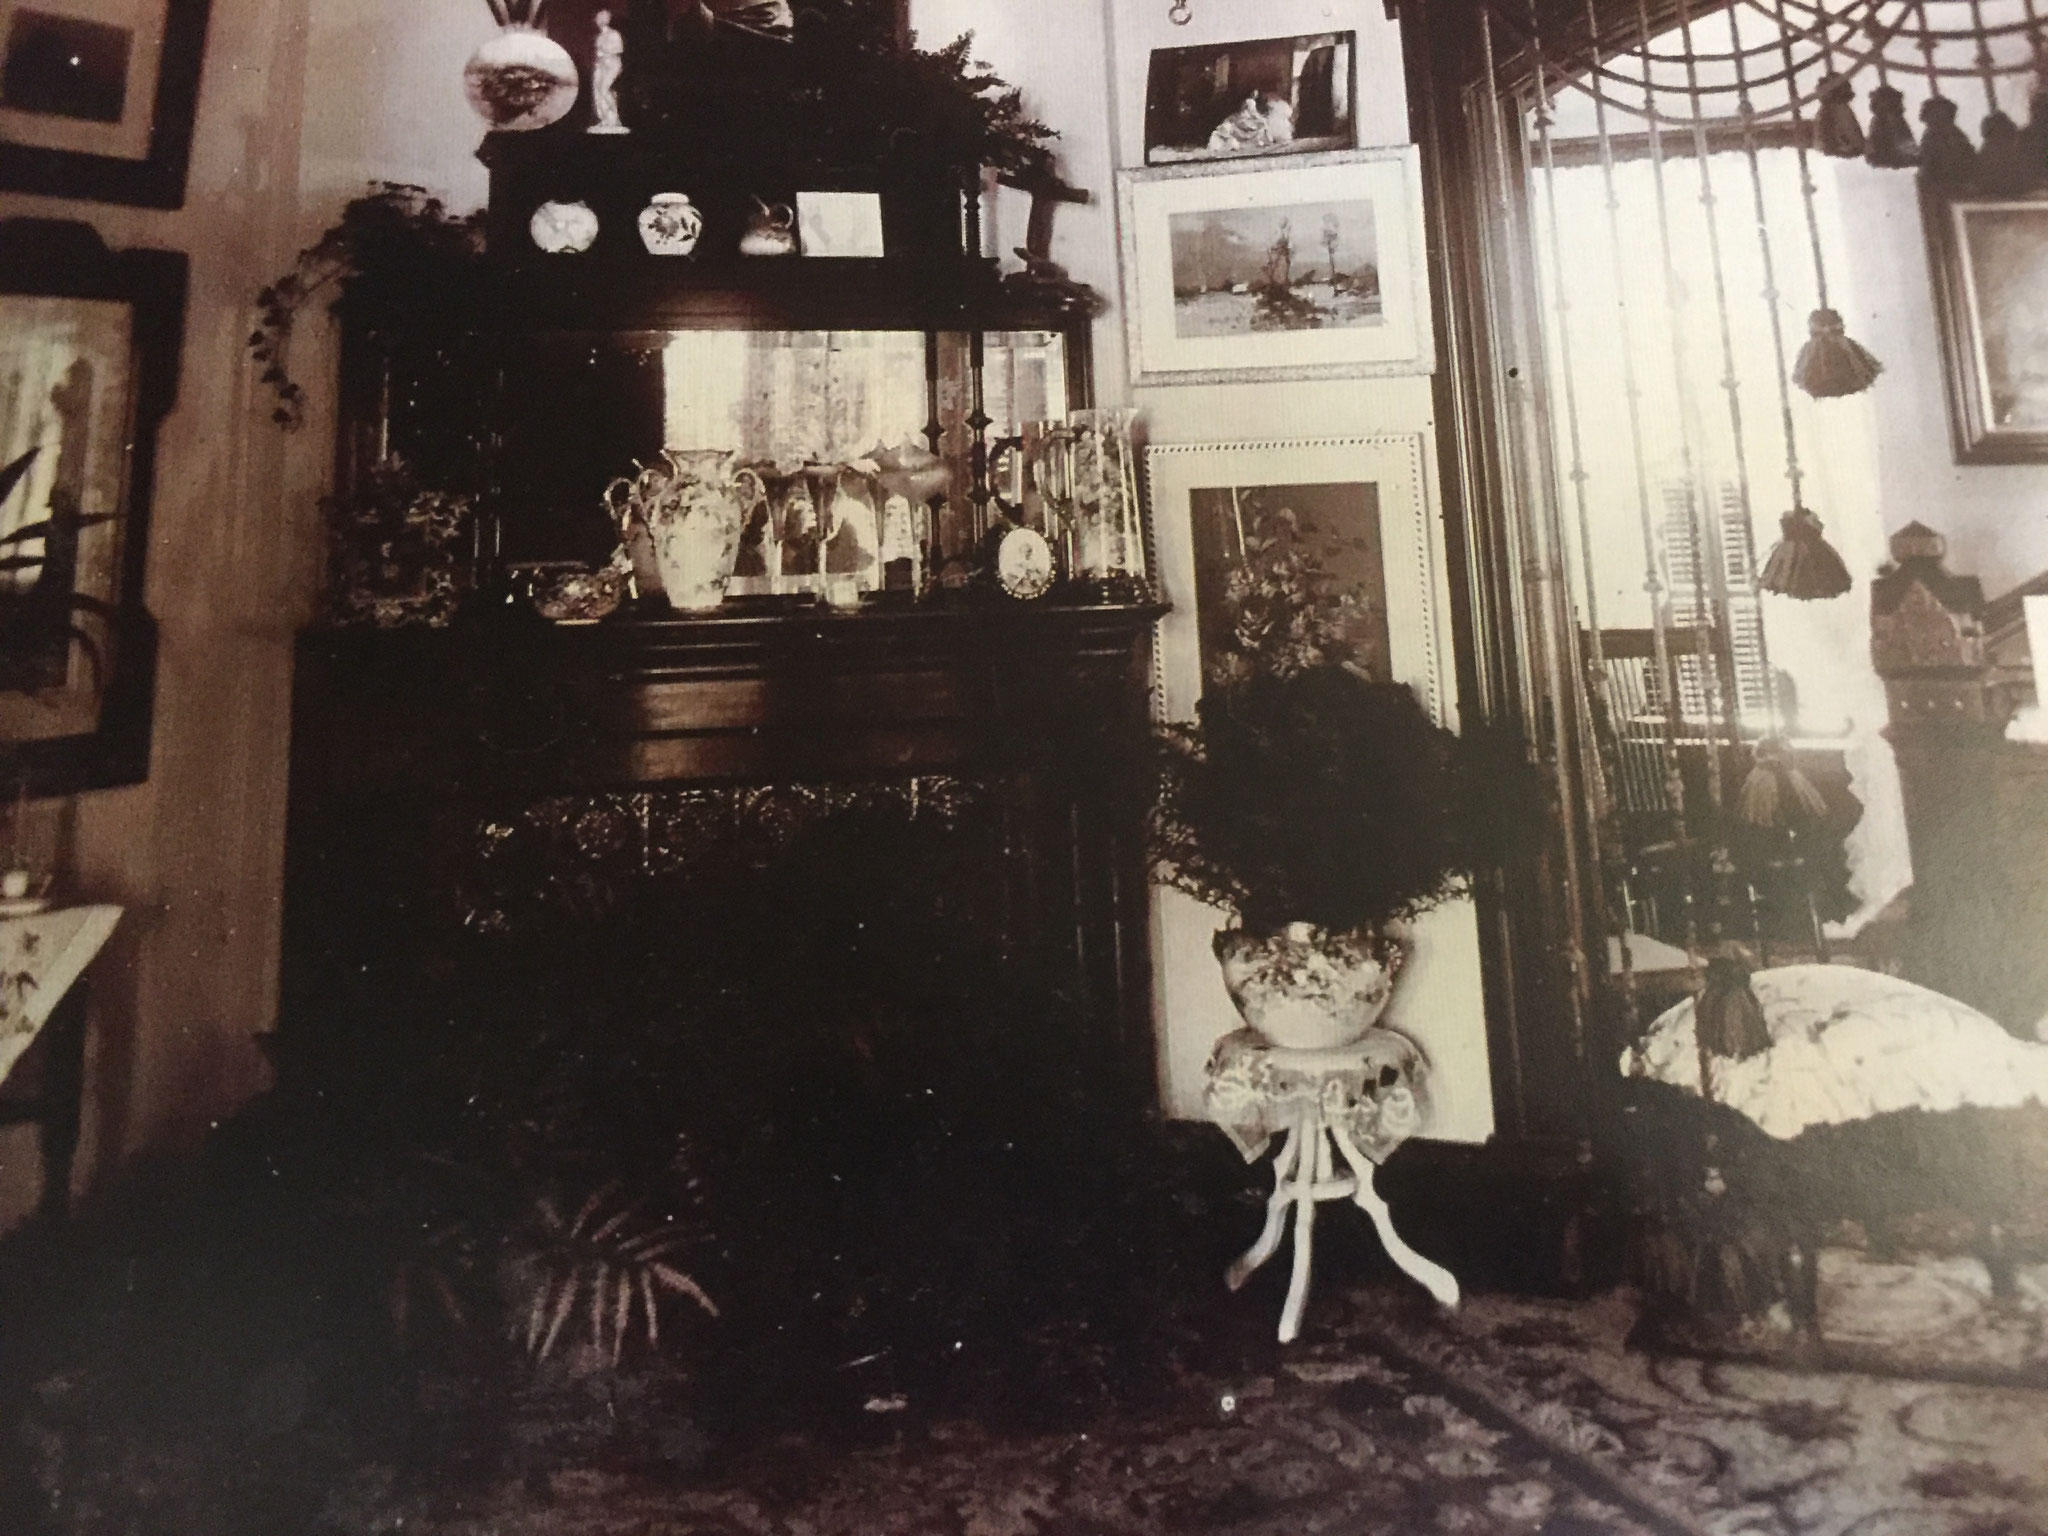 Bailey House interior late 19th century